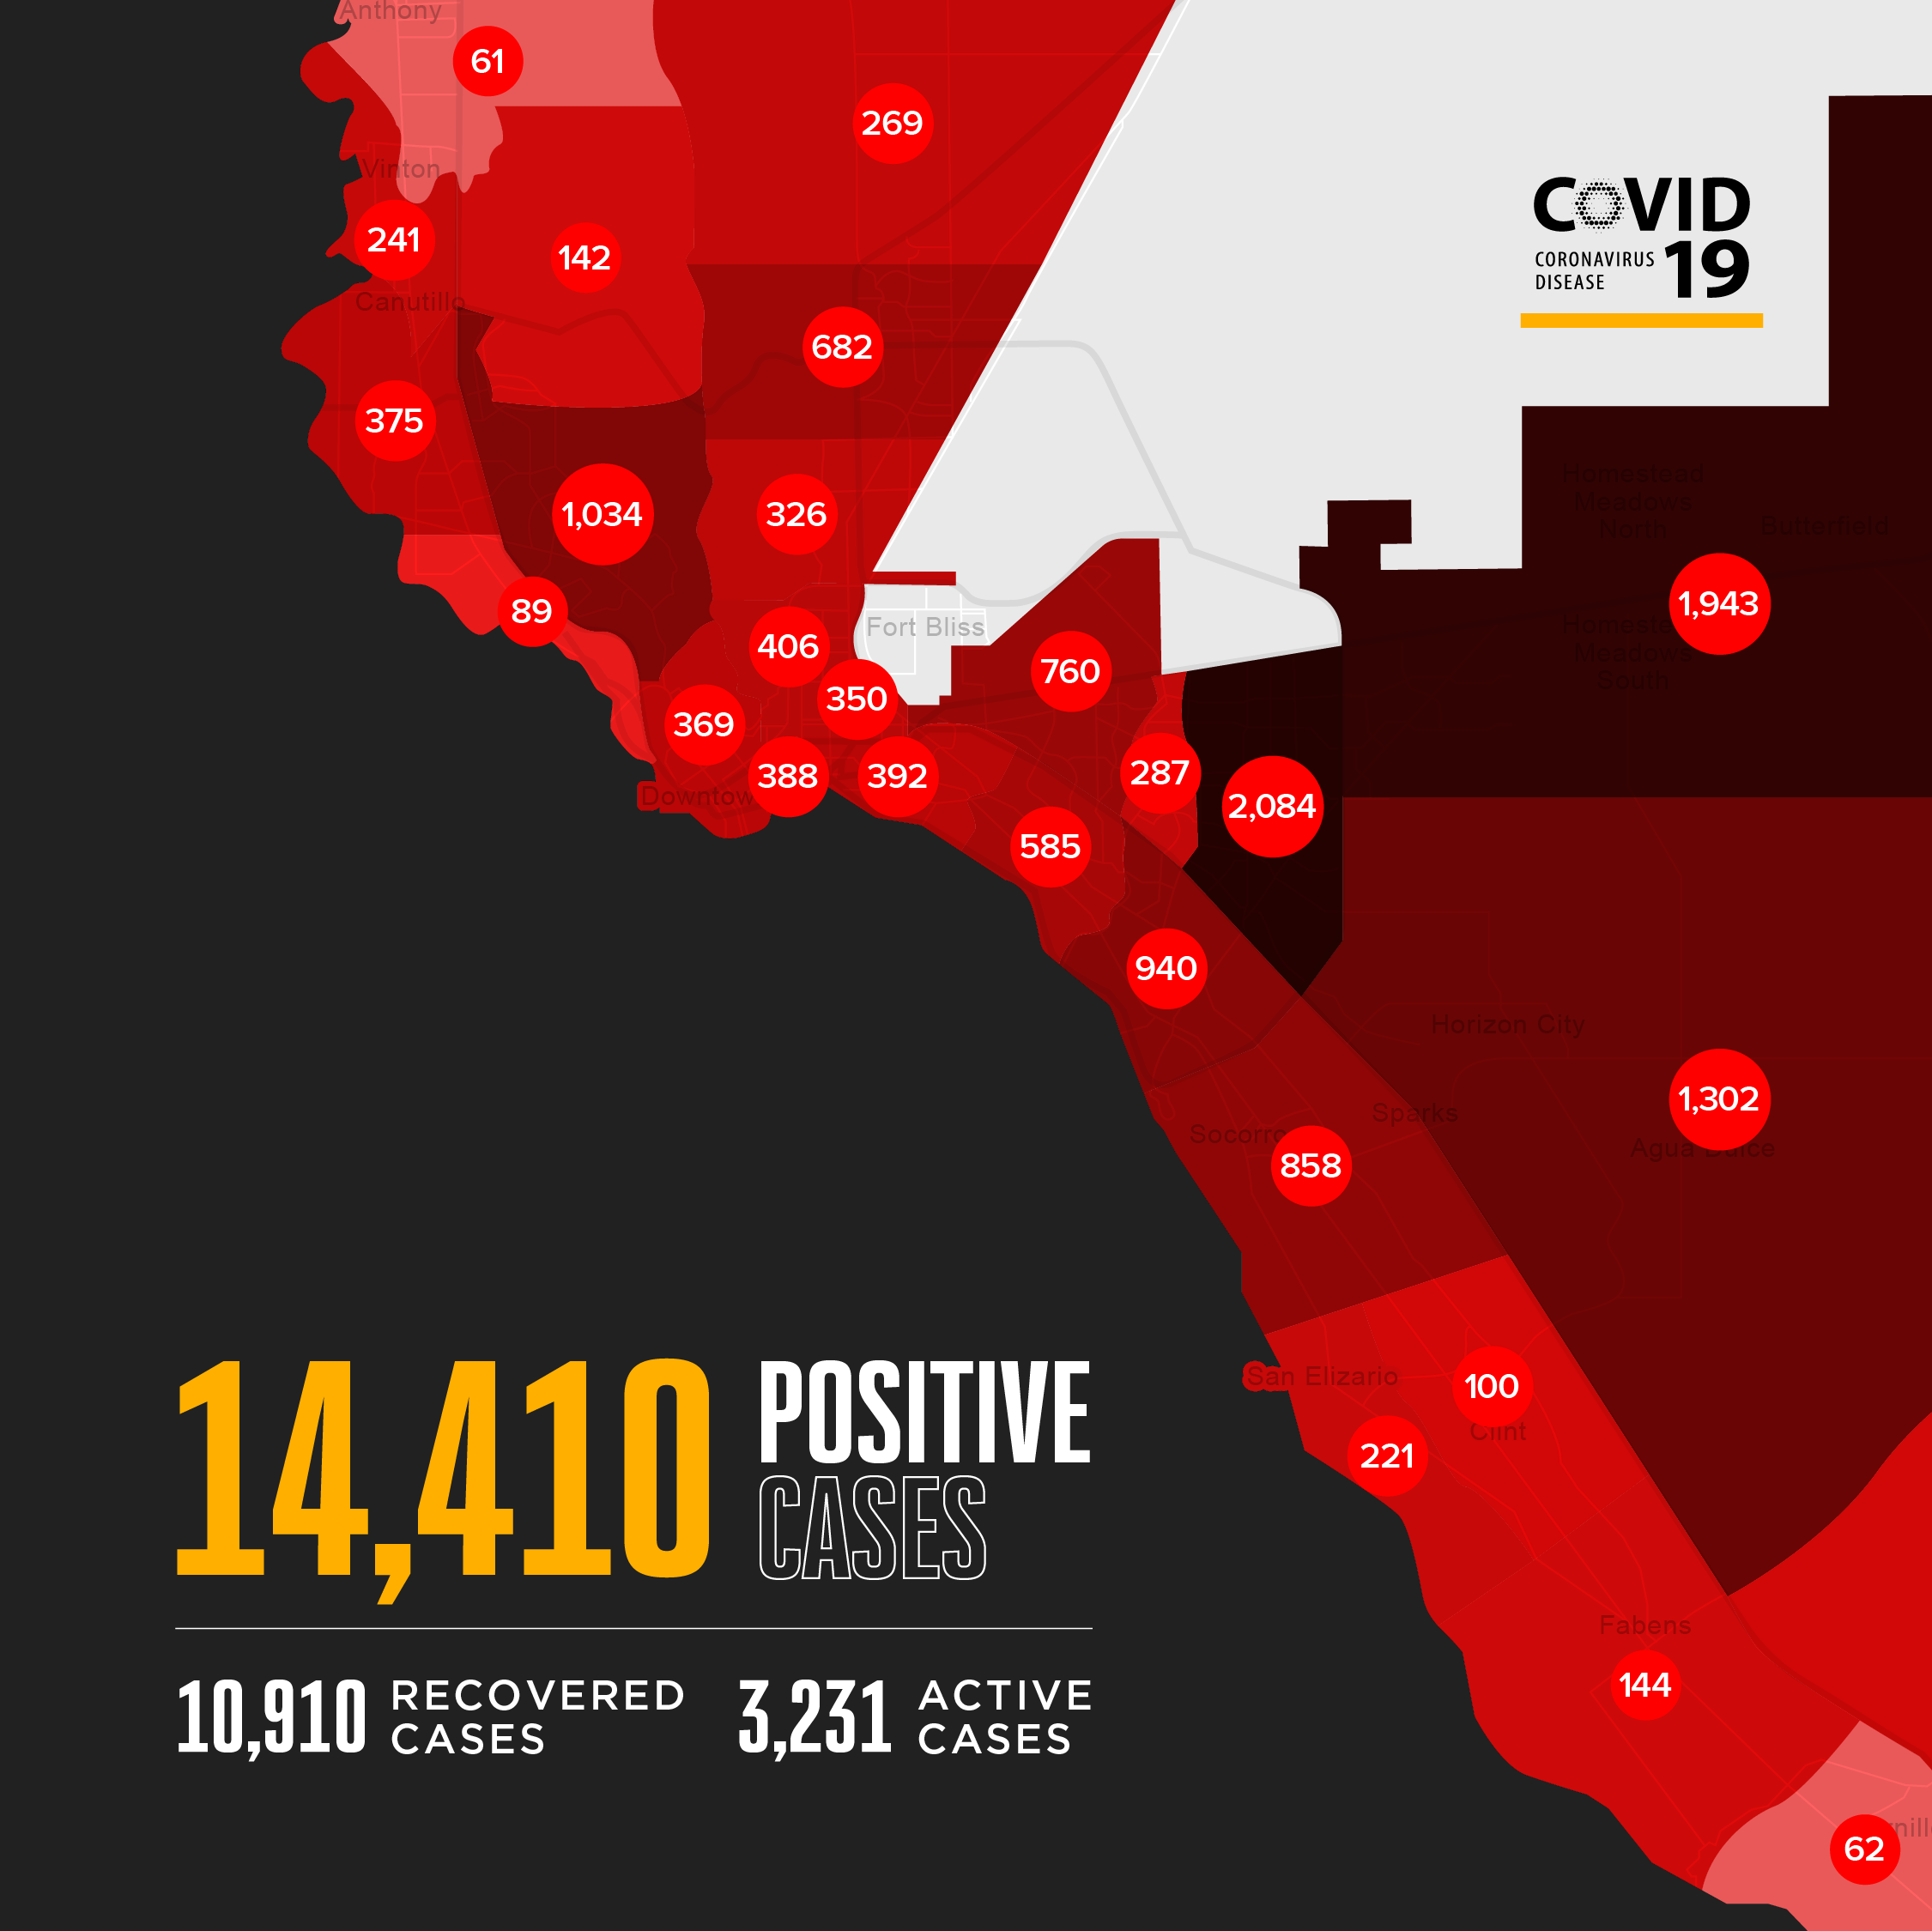 This map shows the cumulative total of positive COVID-19 cases by ZIP codes and the number of cases in parenthesis: 79821 (61), 79835 (241), 79836 (100), 79838 (144), 79849 (221), 79853 (62), 79901 (388), 79902 (369), 79903 (350), 79904 (326), 79905 (392), 79907 (940), 79911 (142), 79912 (1,034), 79915 (585), 79922 (89), 79924 (682), 79925 (760), 79927 (858), 79928 (1,302), 79930 (406), 79932 (375), 79934 (269), 79935 (287), 79936 (2,084), 79938 (1,943)